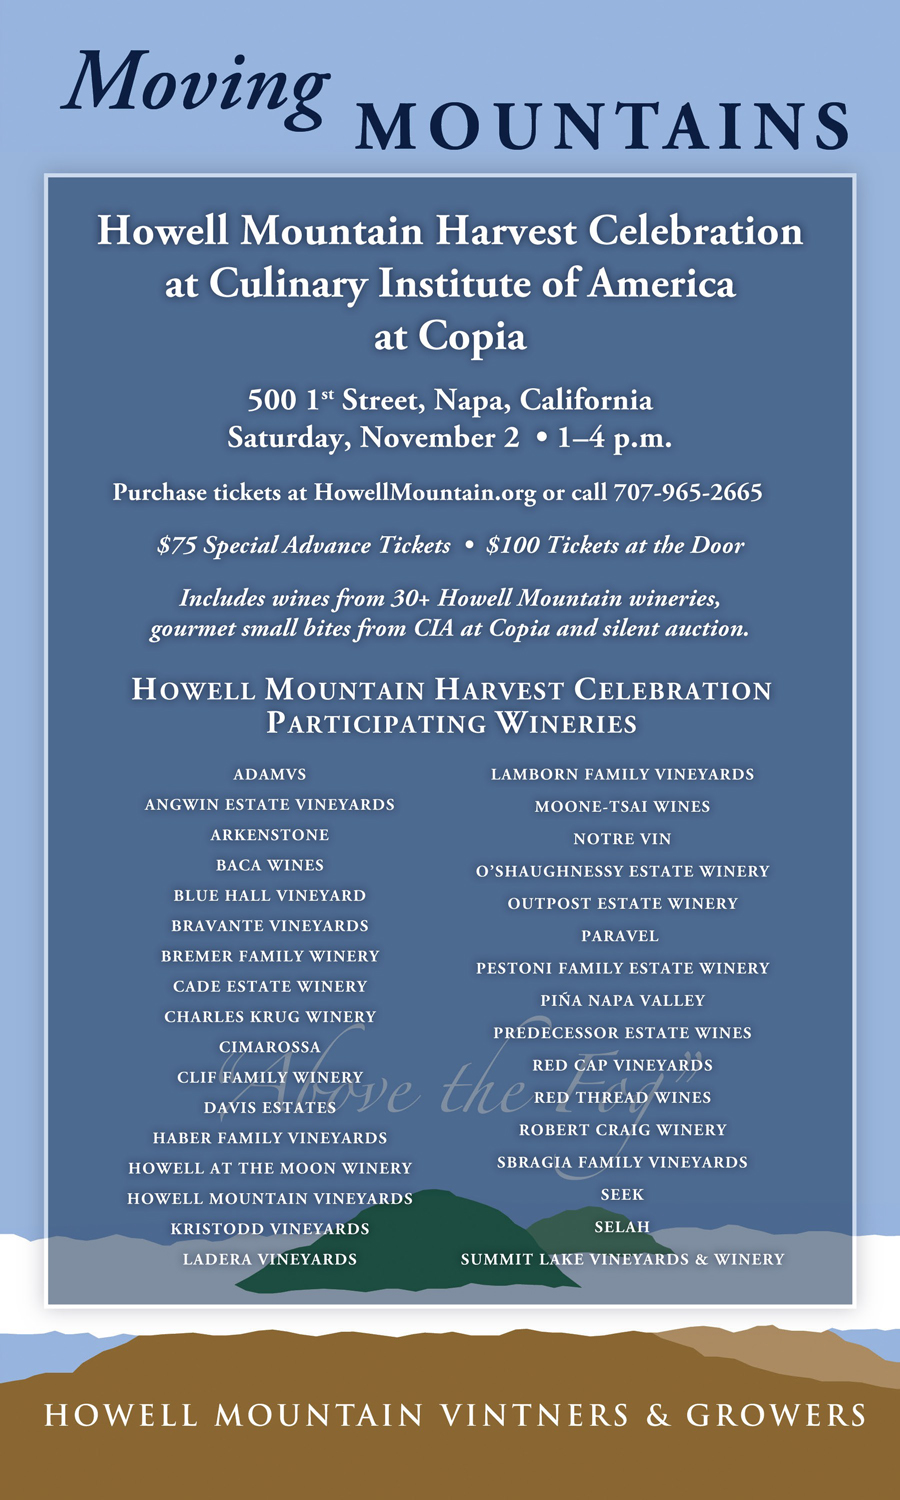 Howell Mountain Harvest Celebration